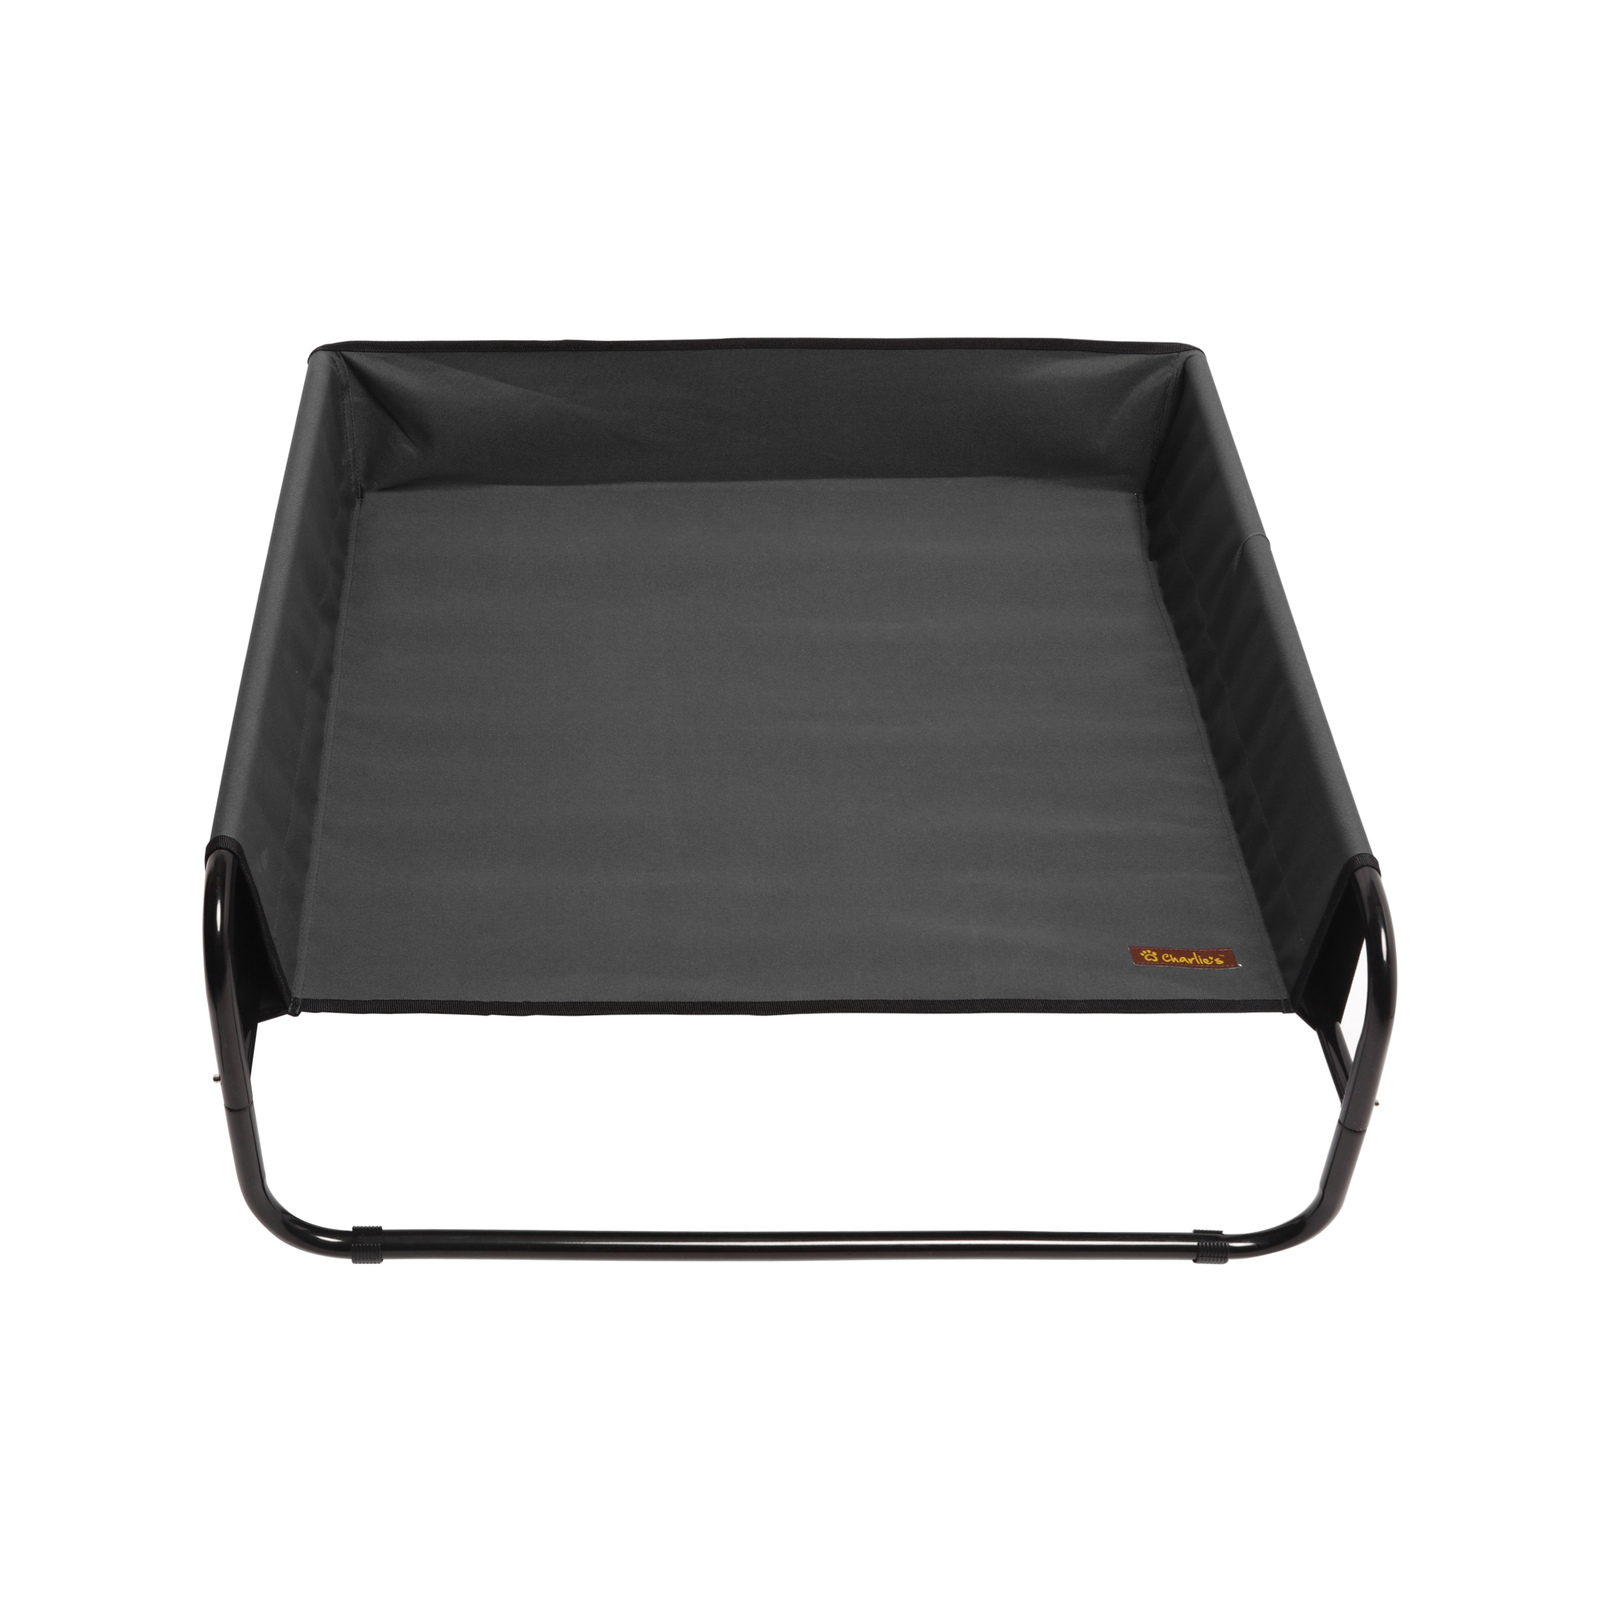 Charlie's Pet High Walled Outdoor Trampoline Pet Bed Cot - Black